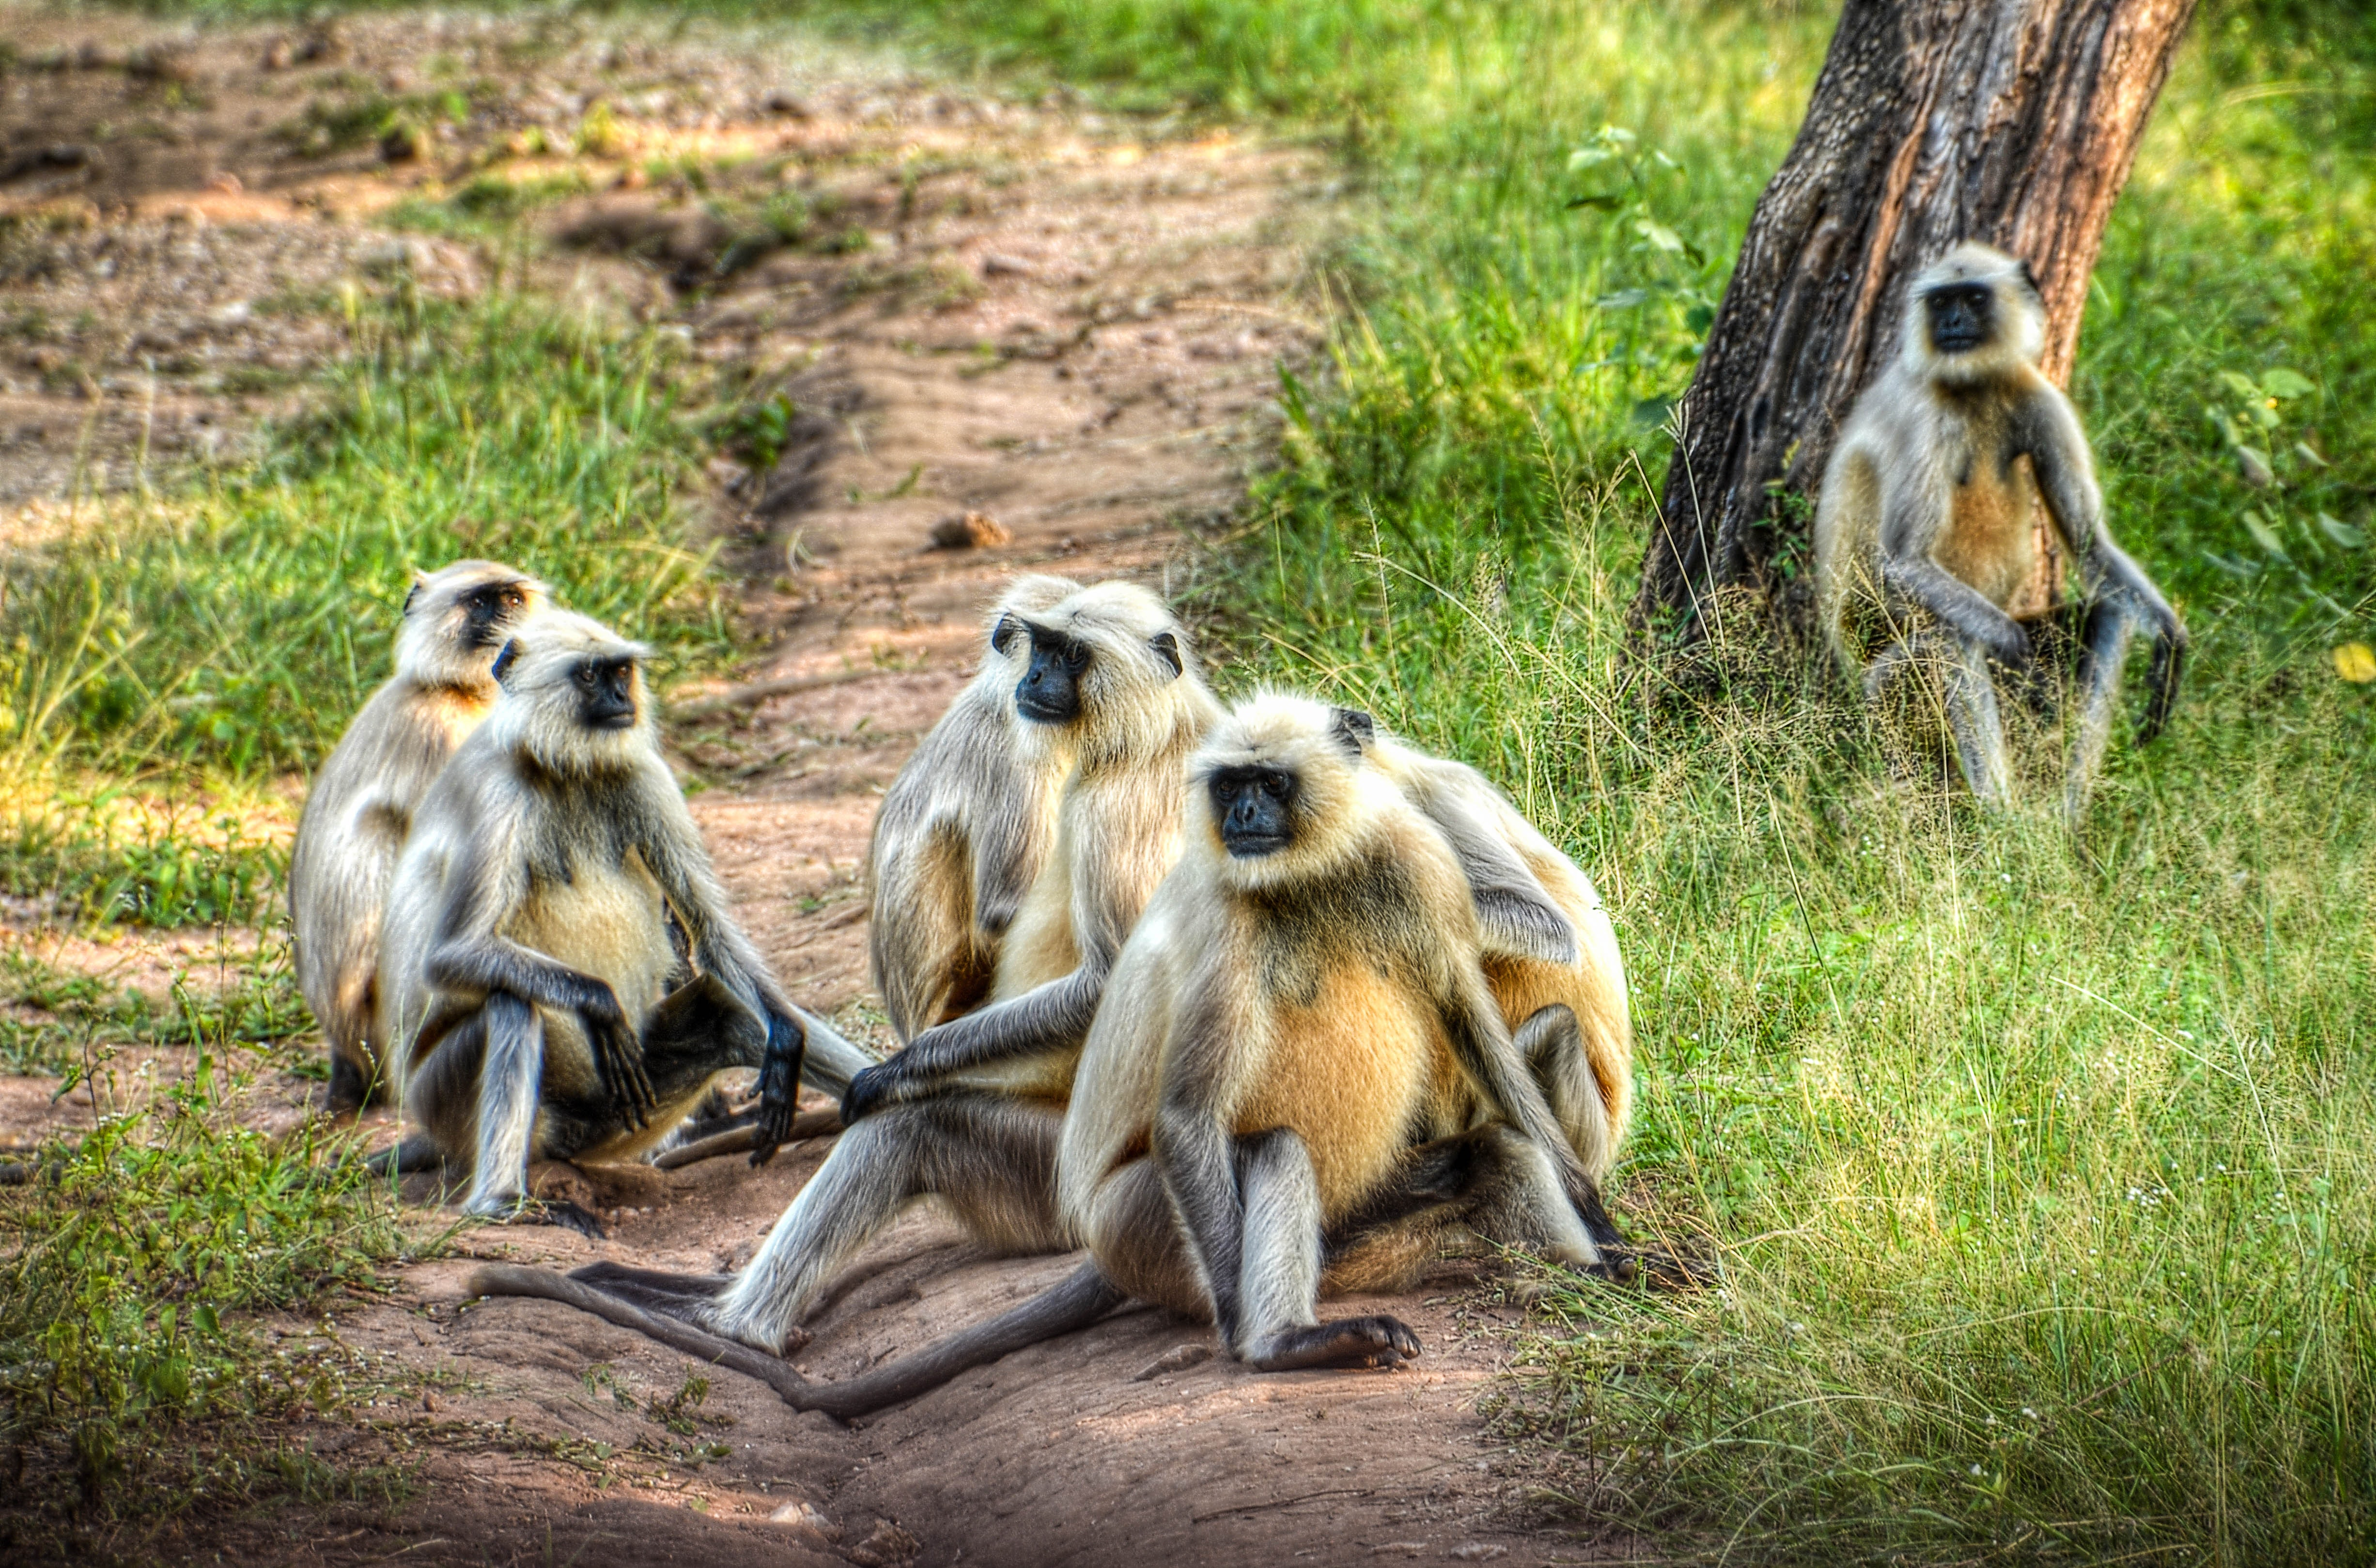 Group of Primates on Ground, Photography, Young, Wildlife, Wilderness, HQ Photo